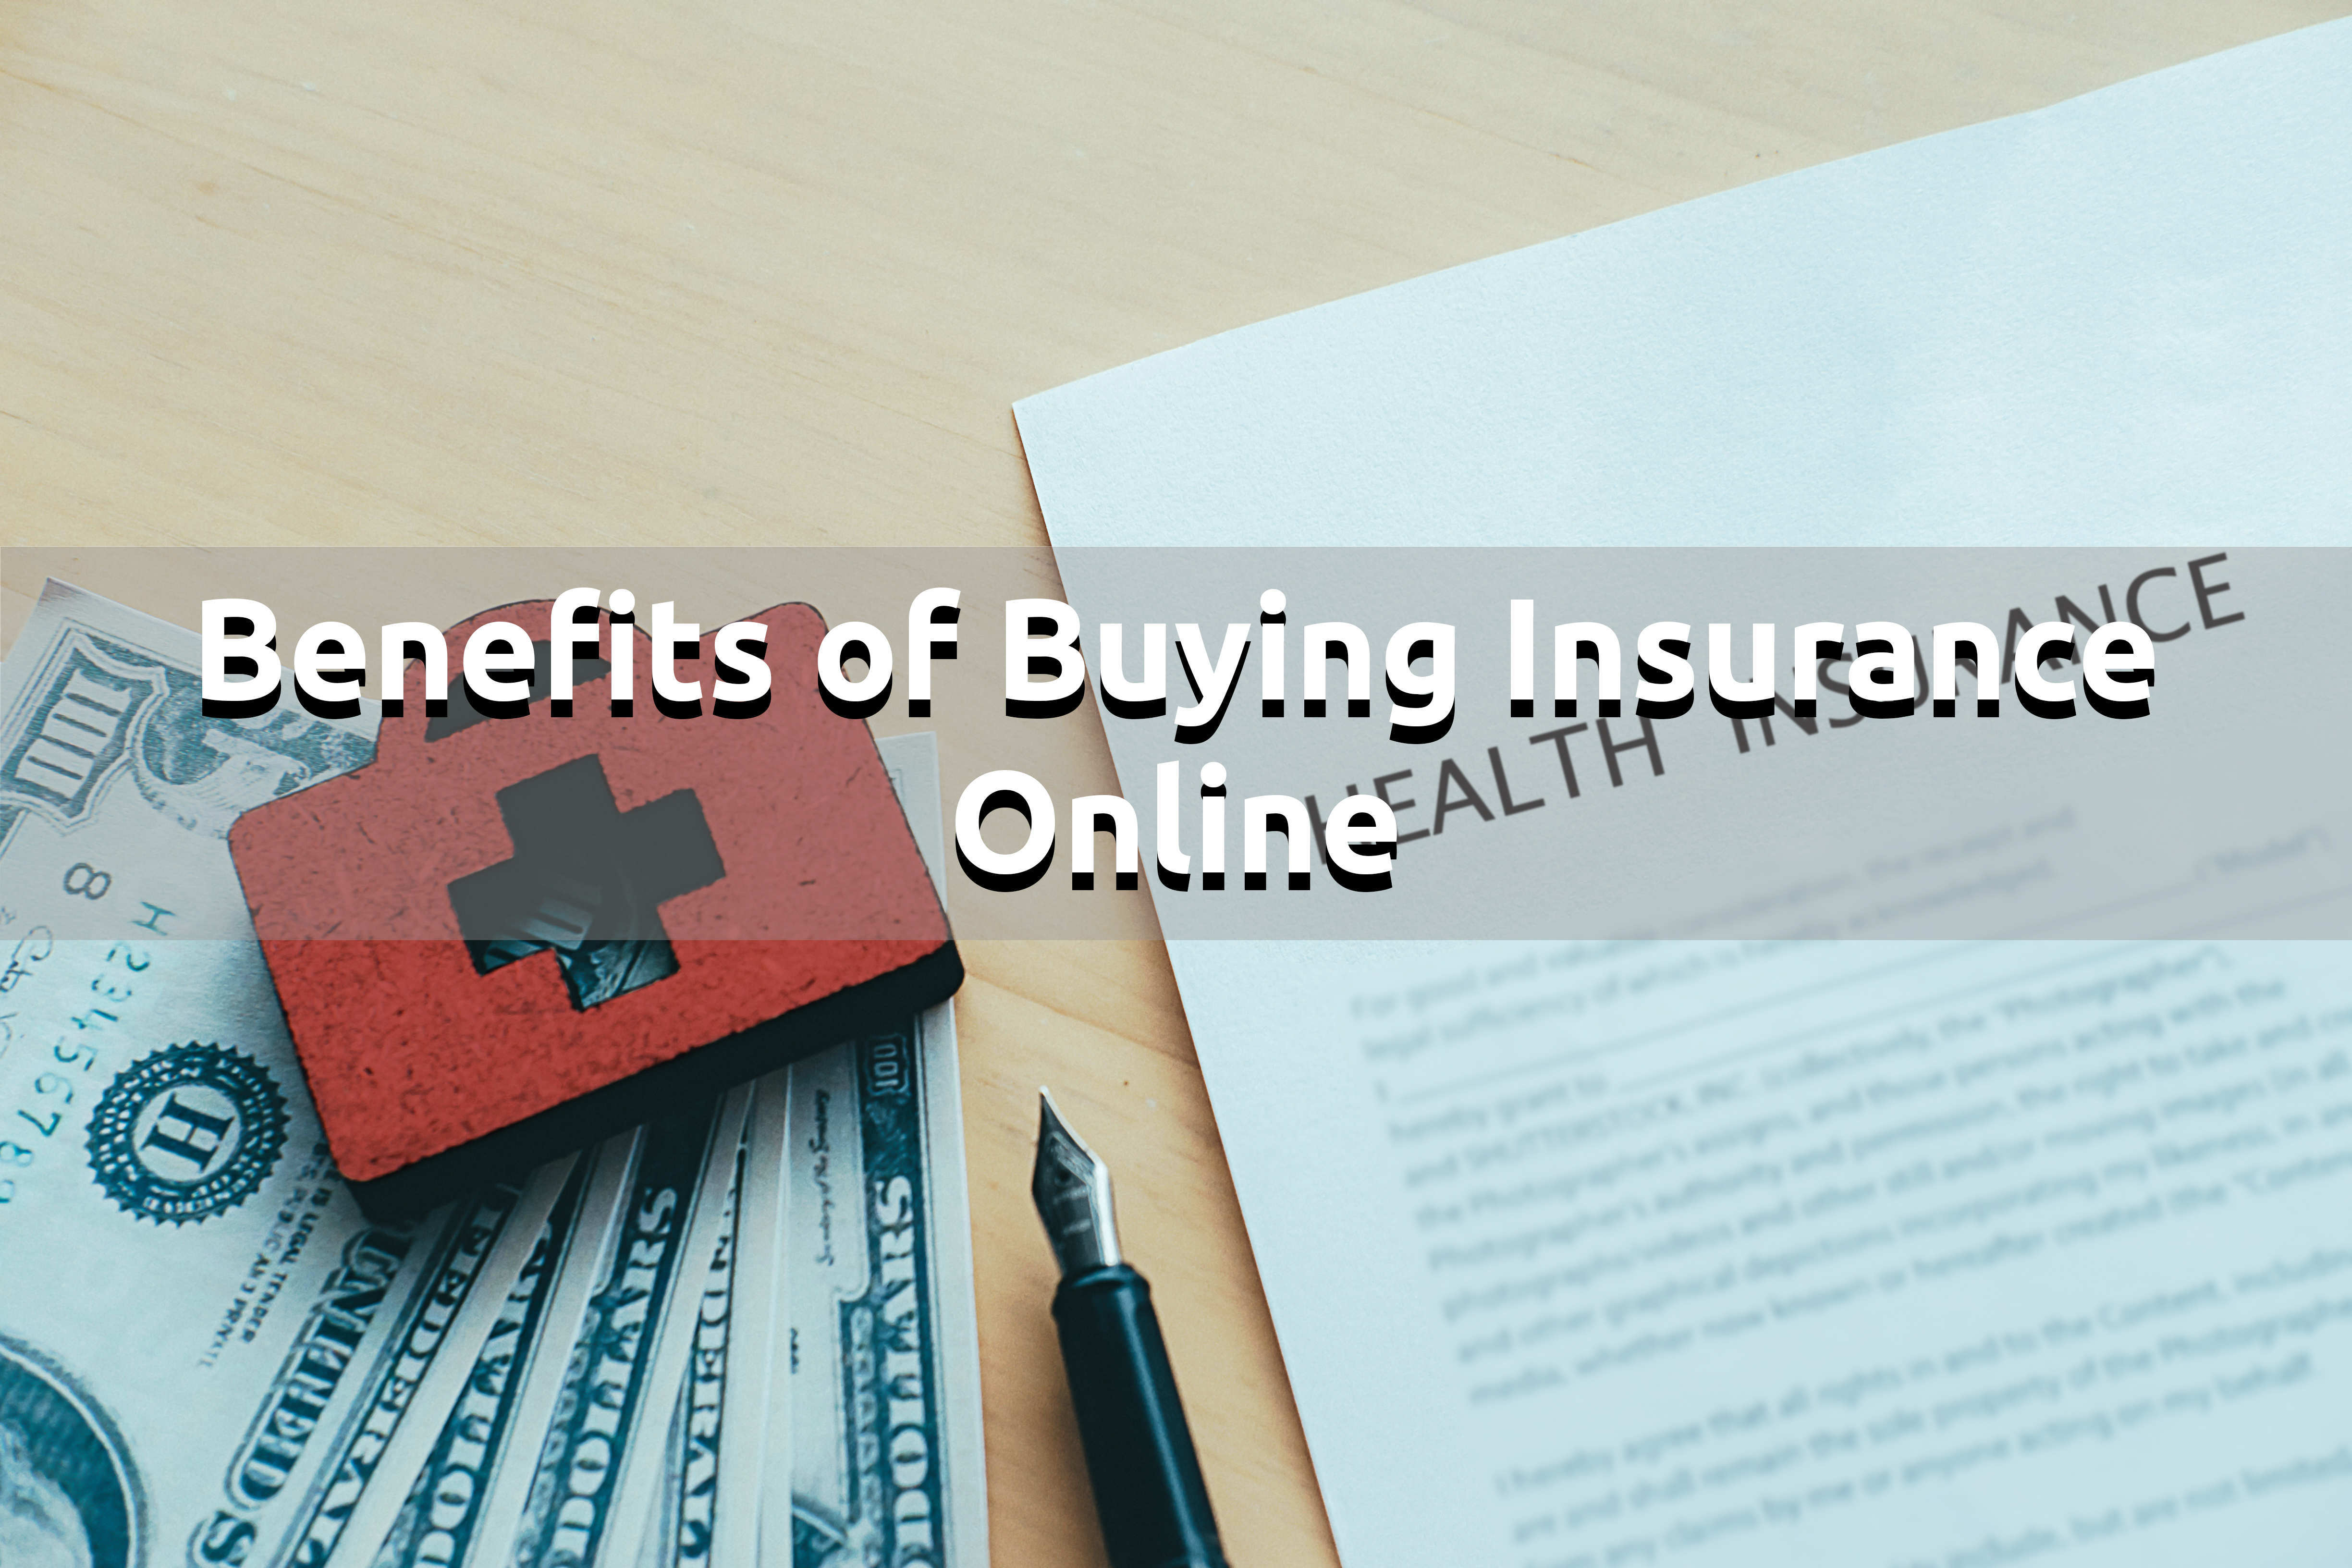 benefits-life-health-insurance-online-policy-concept-idea-featured-image